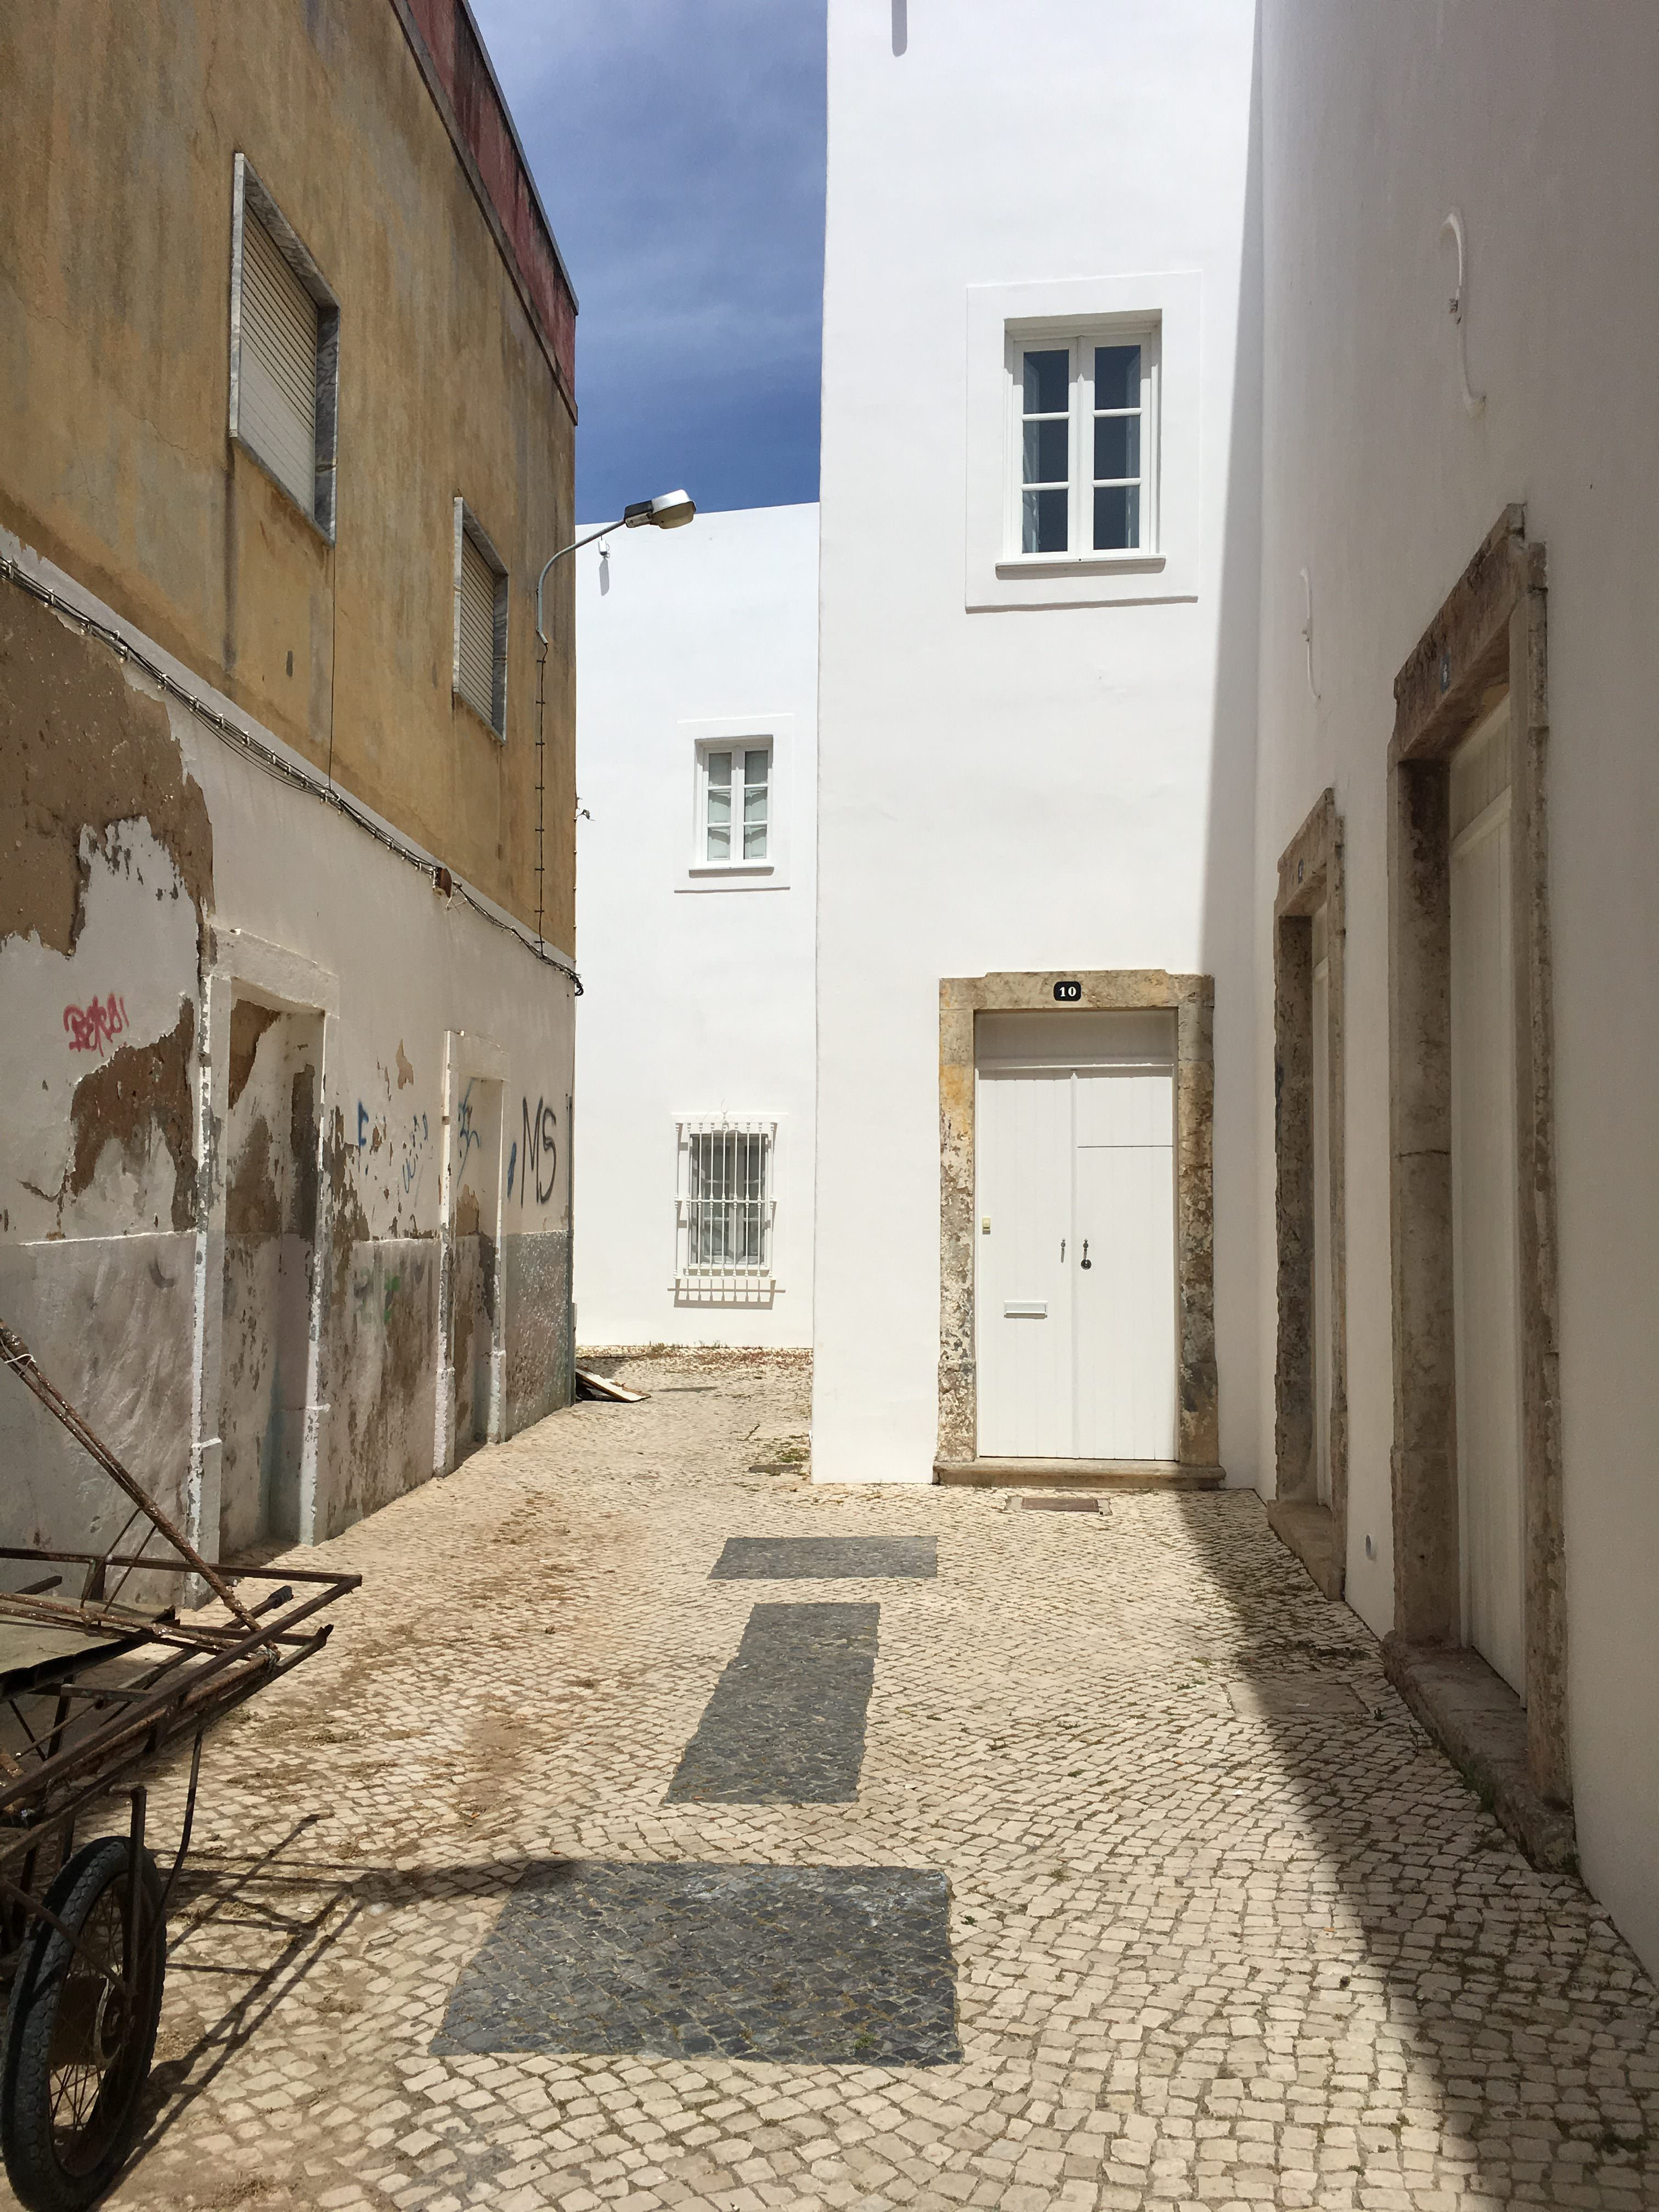 The front door to Convento, no signs, just freshly painted and down a cobbled street.